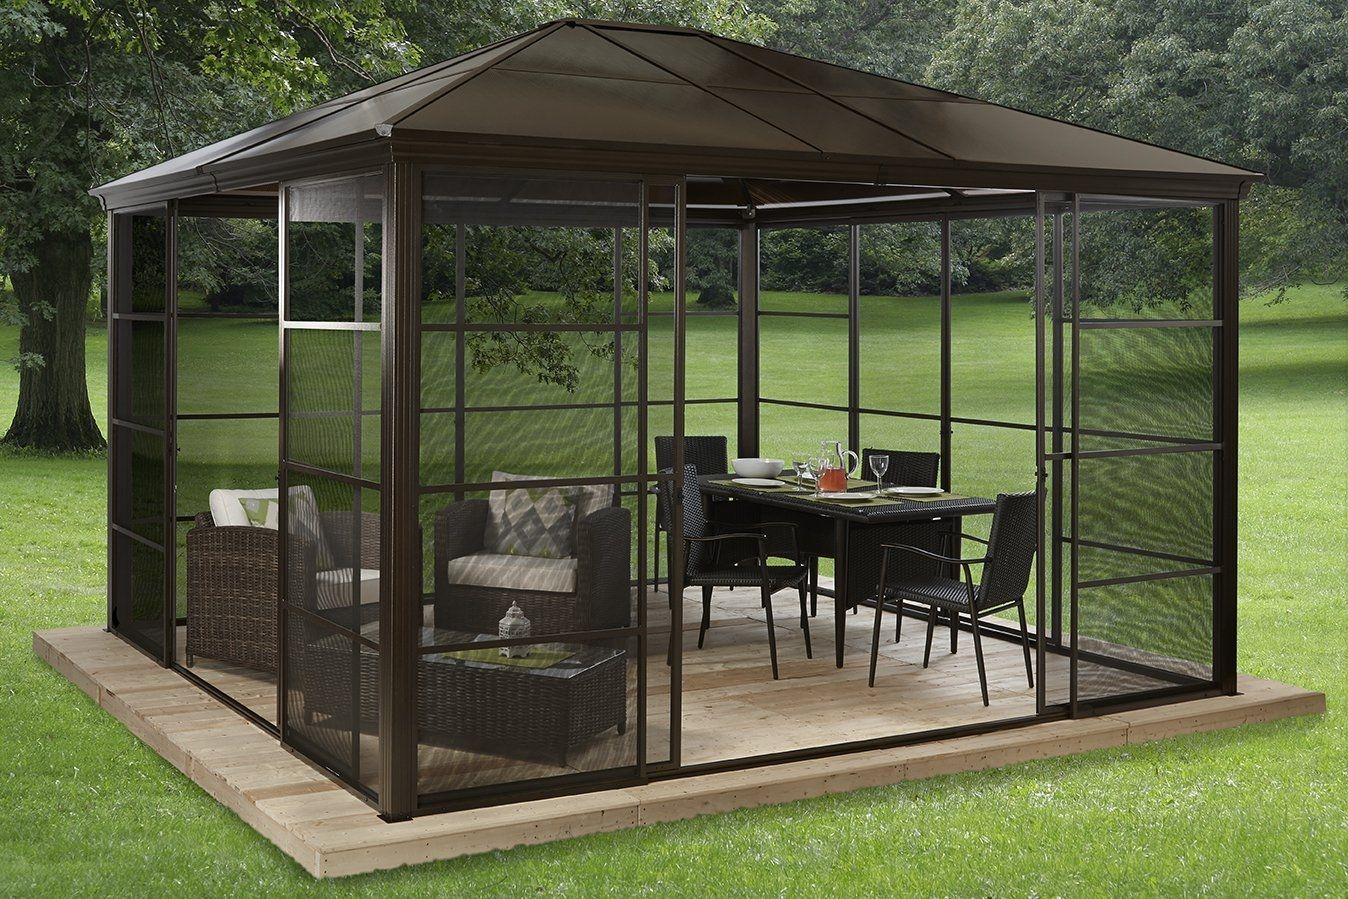 Hardtop Gazebo Roof Panels Hardtop Gazebo Roof Panels Hardtop Gazebos Best 2017 Choices Sorted Size 1348 X 899 In 2020 Backyard Gazebo Small Gazebo Screened Gazebo